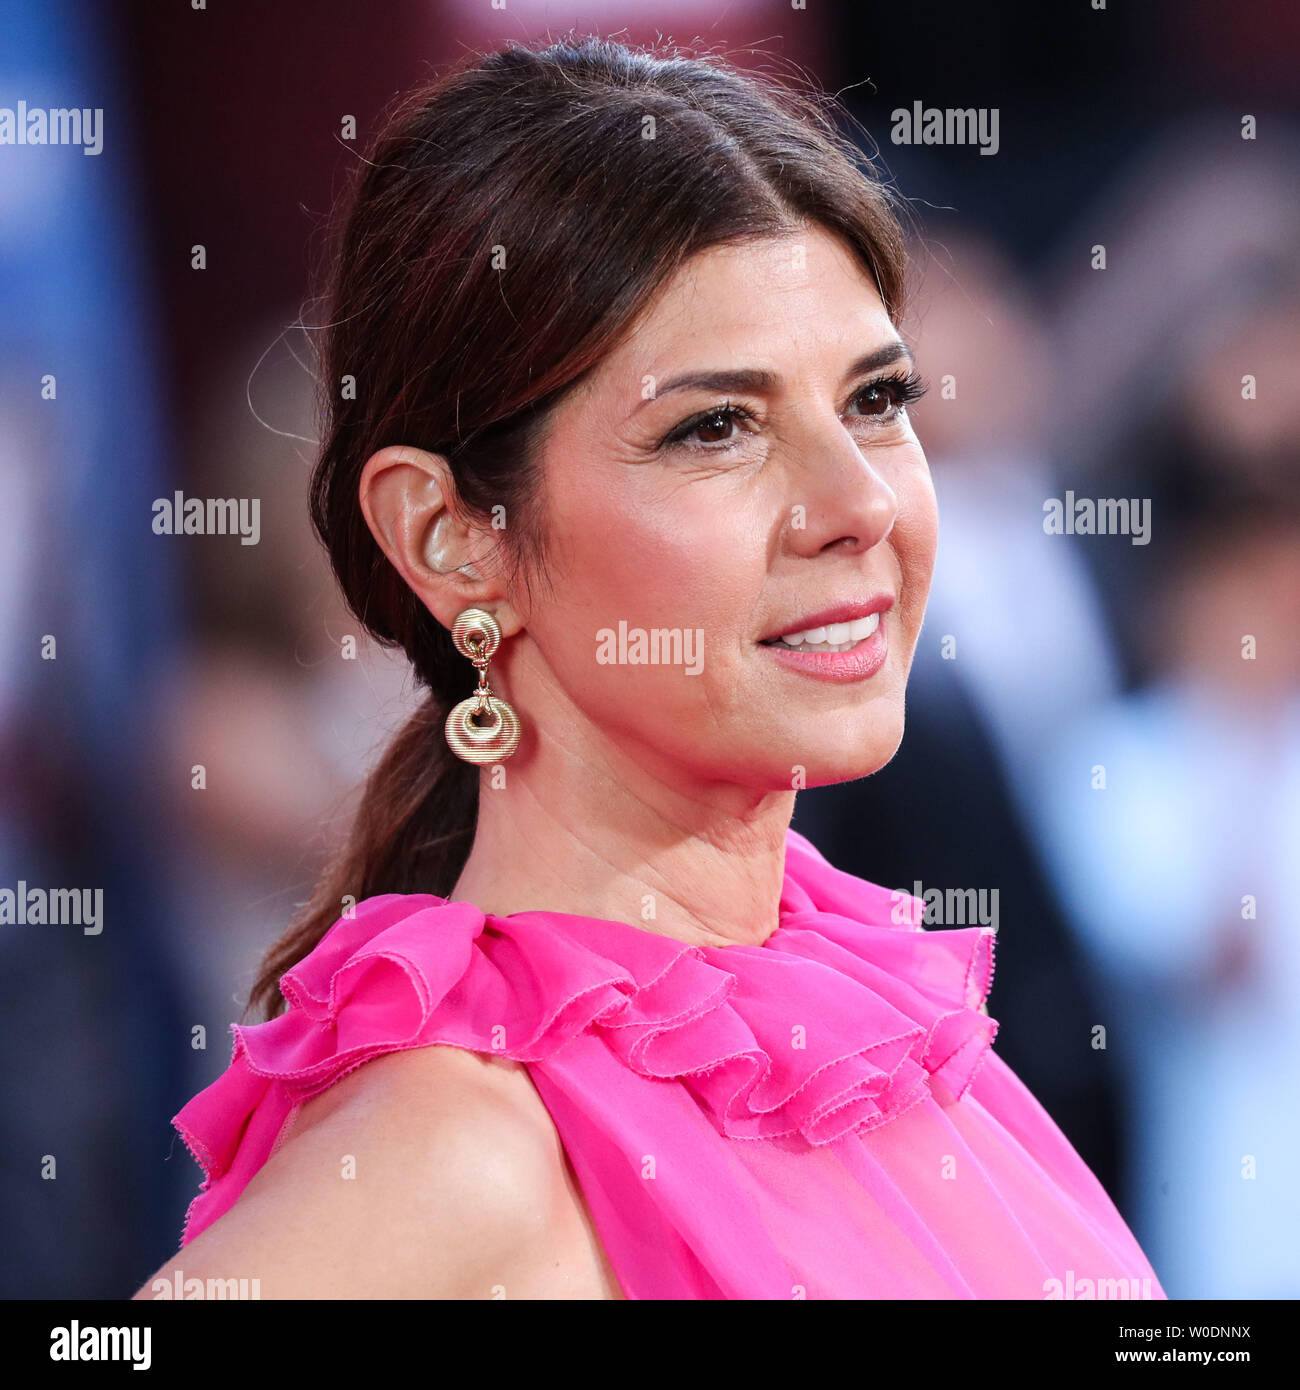 Hollywood, United States. 26th June, 2019. HOLLYWOOD, LOS ANGELES, CALIFORNIA, USA - JUNE 26: Actress Marisa Tomei wearing Valentino arrives at the Los Angeles Premiere Of Sony Pictures' 'Spider-Man Far From Home' held at the TCL Chinese Theatre IMAX on June 26, 2019 in Hollywood, Los Angeles, California, United States. (Photo by Xavier Collin/Image Press Agency) Credit: Image Press Agency/Alamy Live News - Stock Image